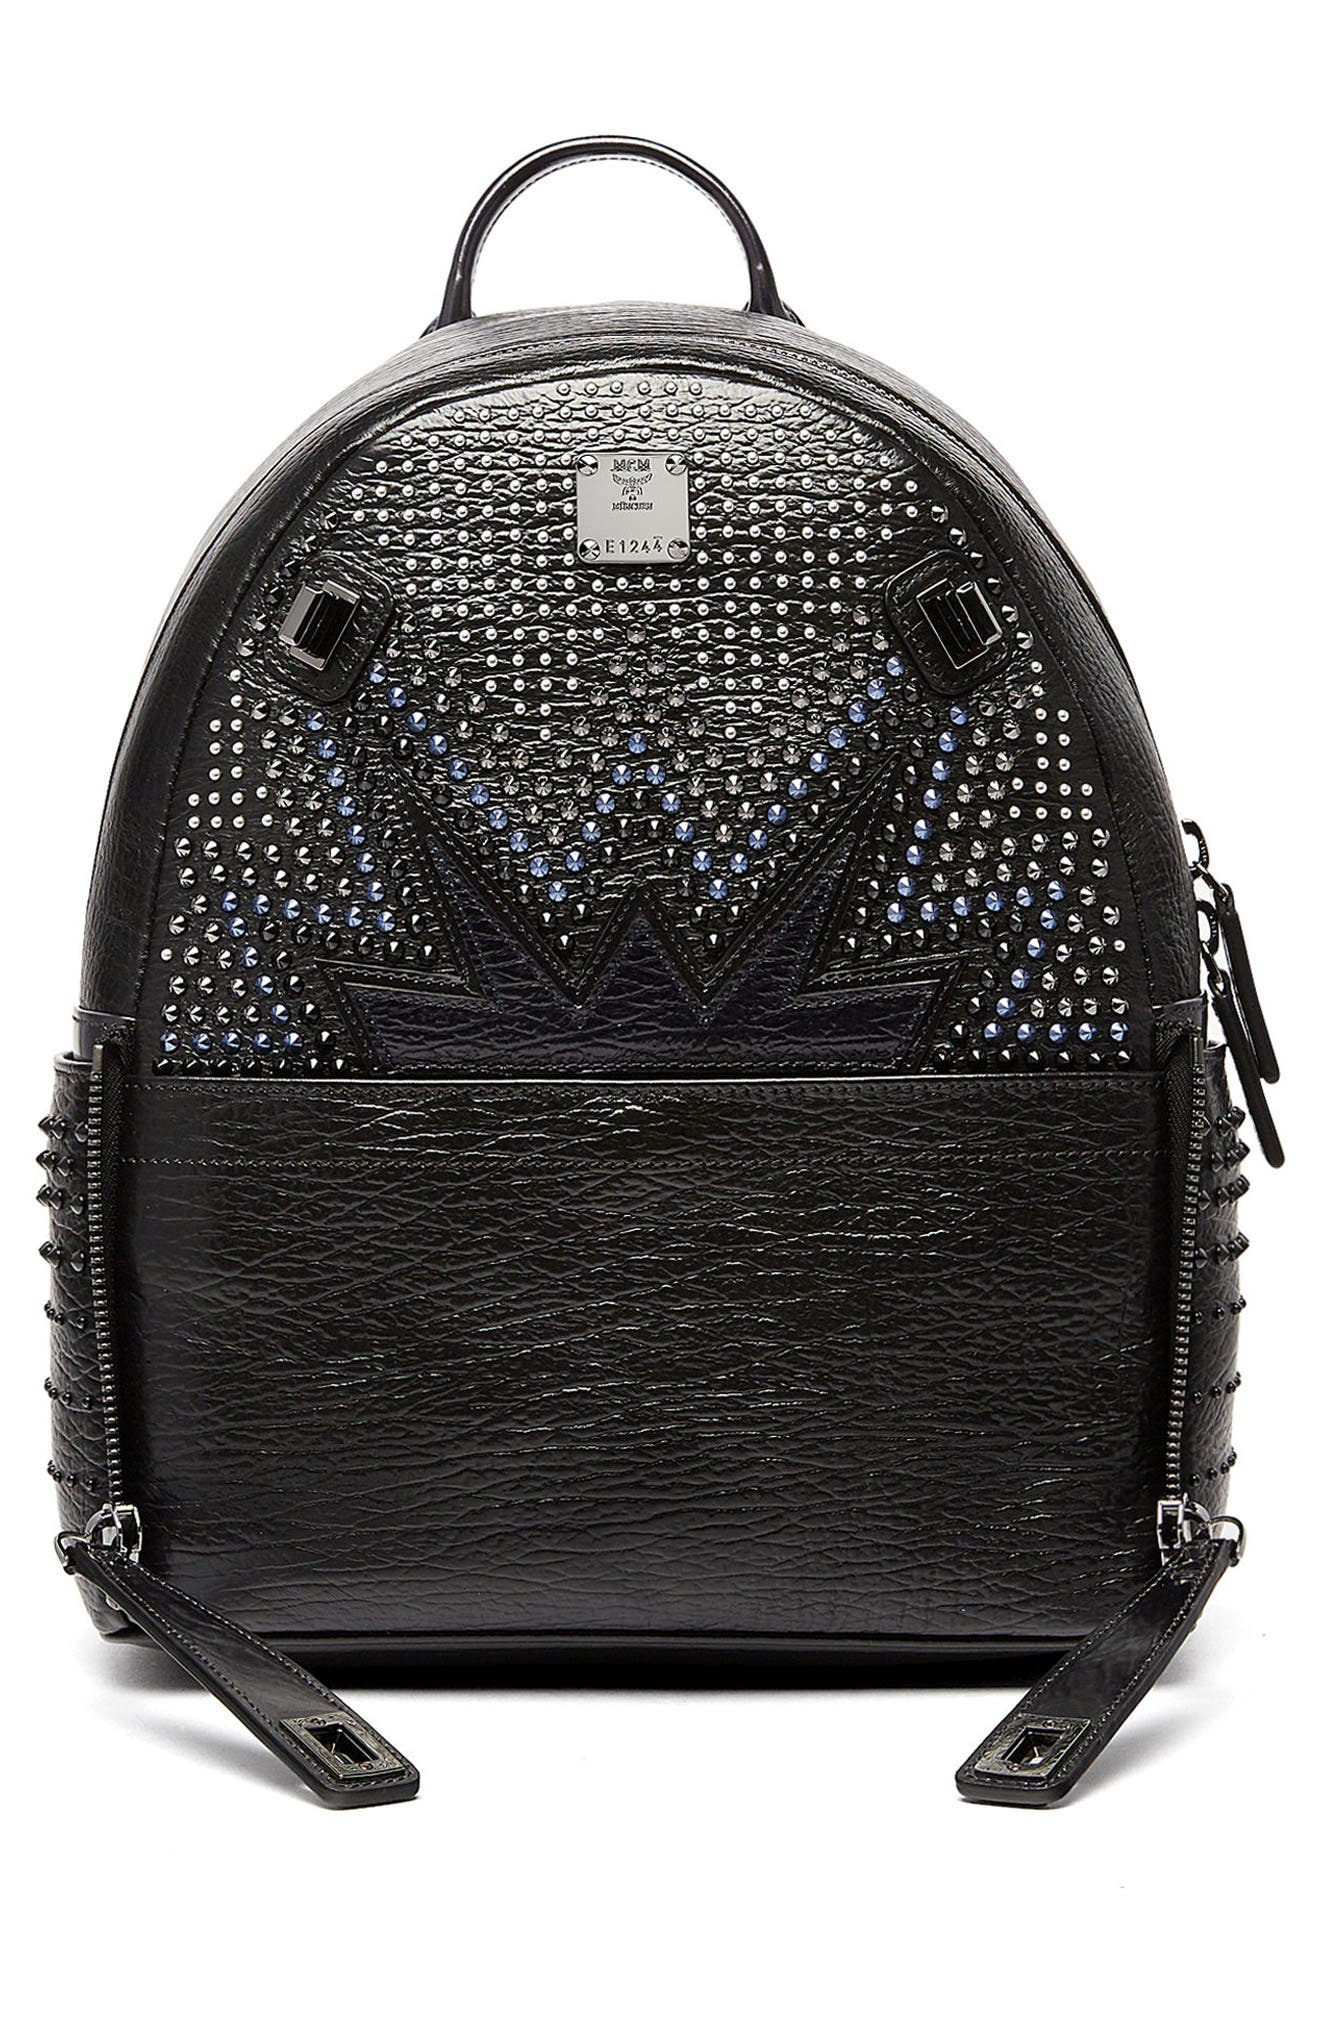 Dual Stark Studded Leather Backpack,                             Alternate thumbnail 7, color,                             001